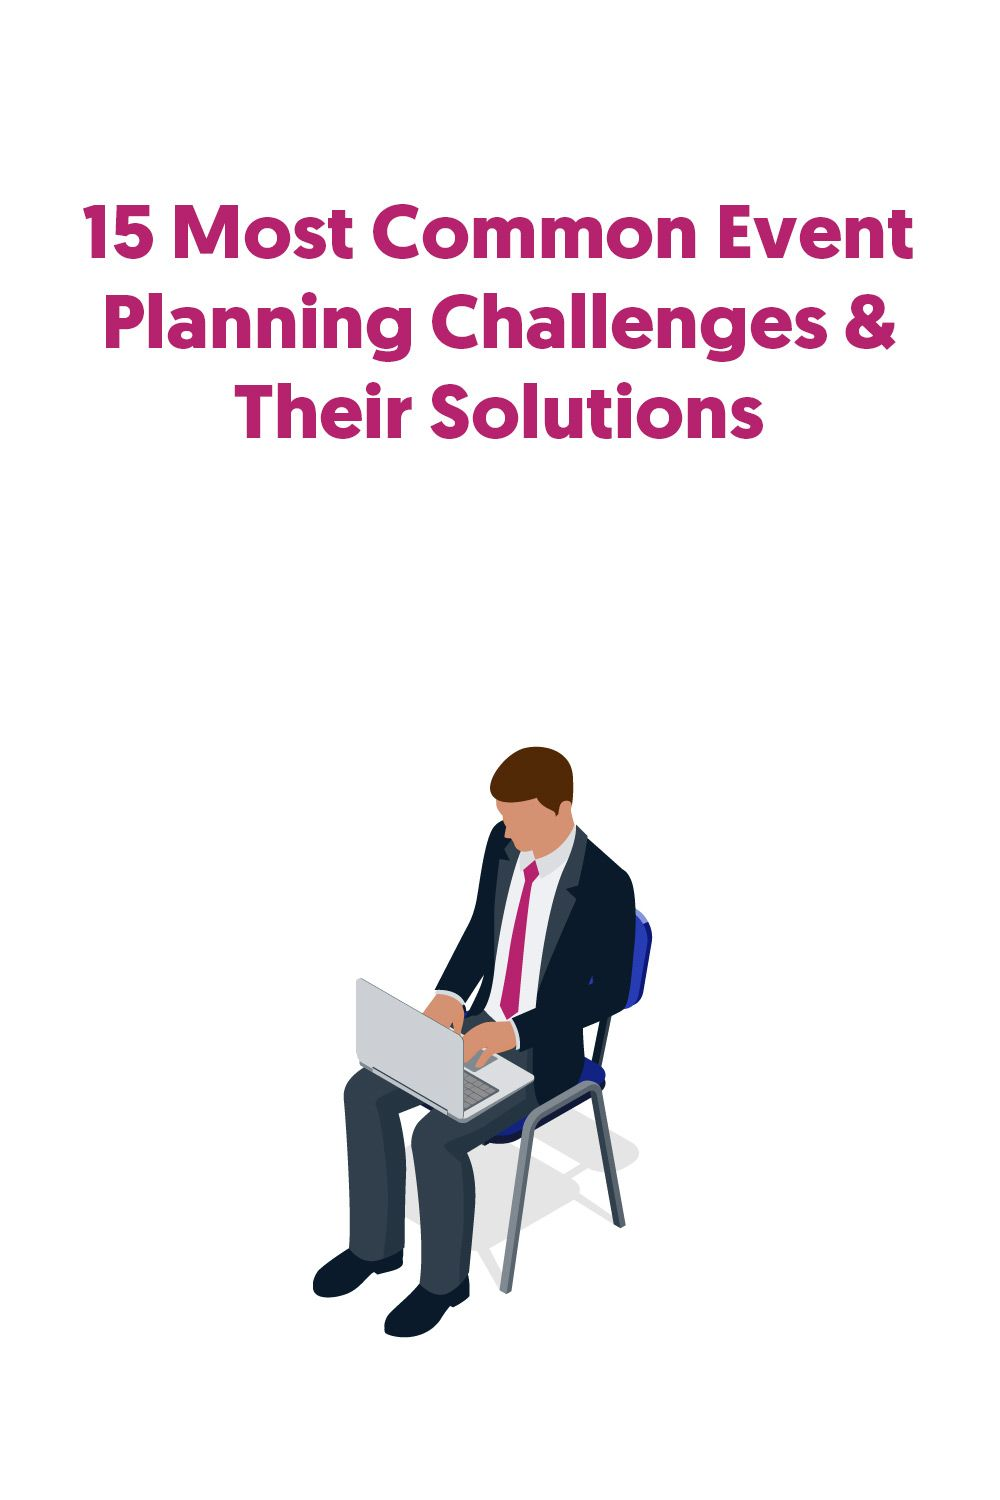 Top 15 Challenges Facing Event Planners Solutions With